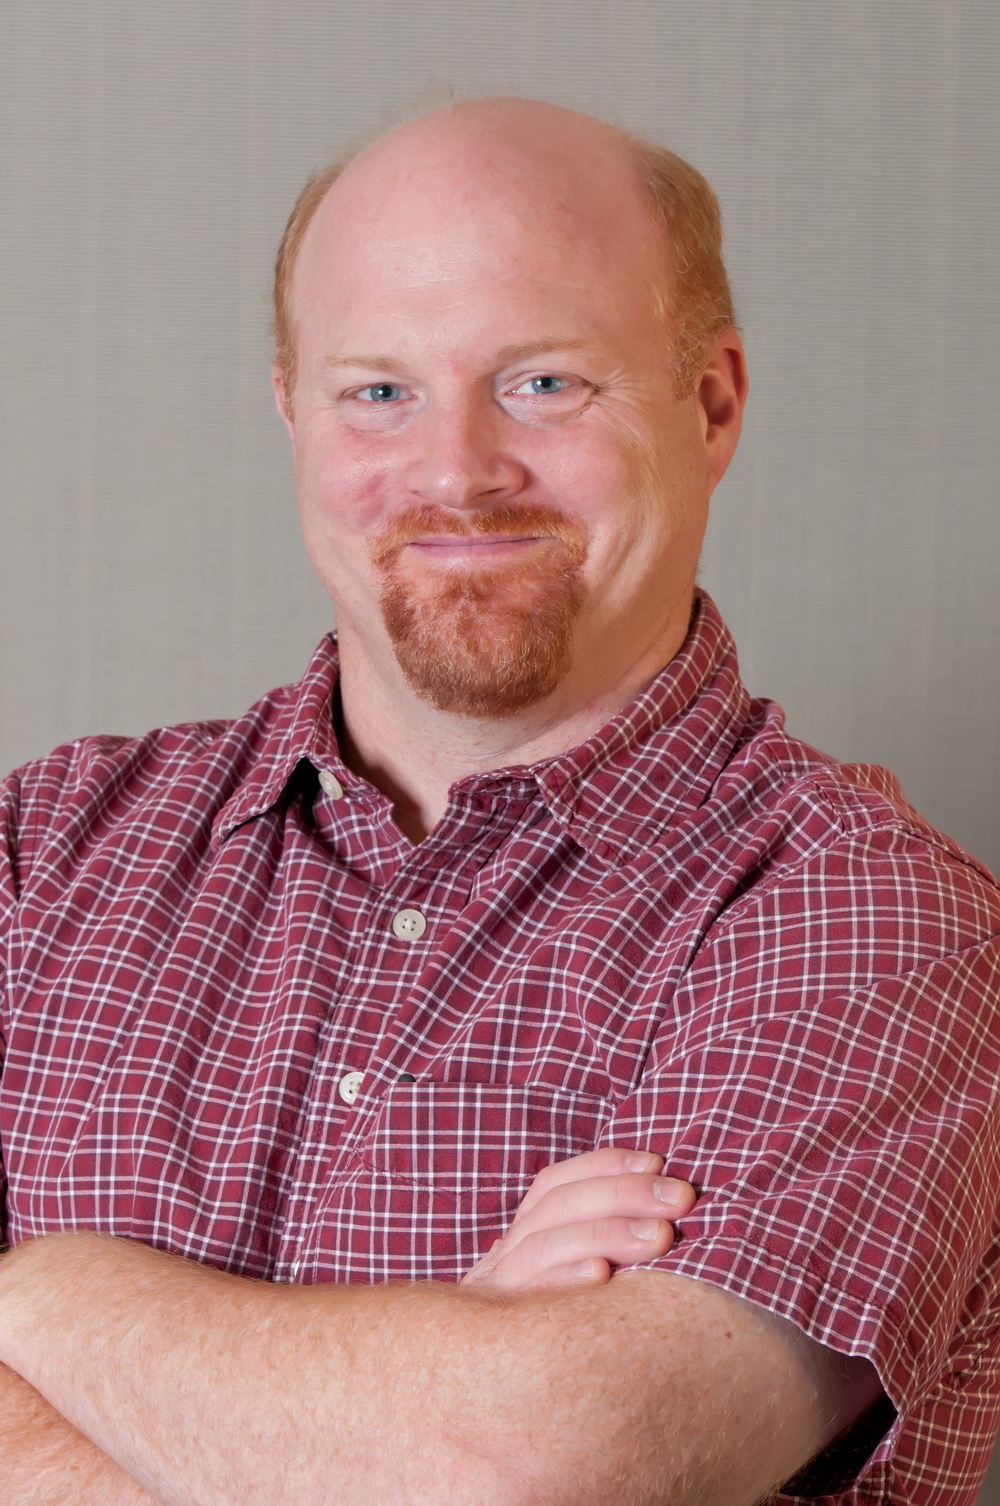 Mike Pierson  Mr. Pierson is the director of choirs at Rock Bridge High School. To contact Mr. Pierson, email at  MPierson@CPSk12.org  or call the school at 573-214-3100